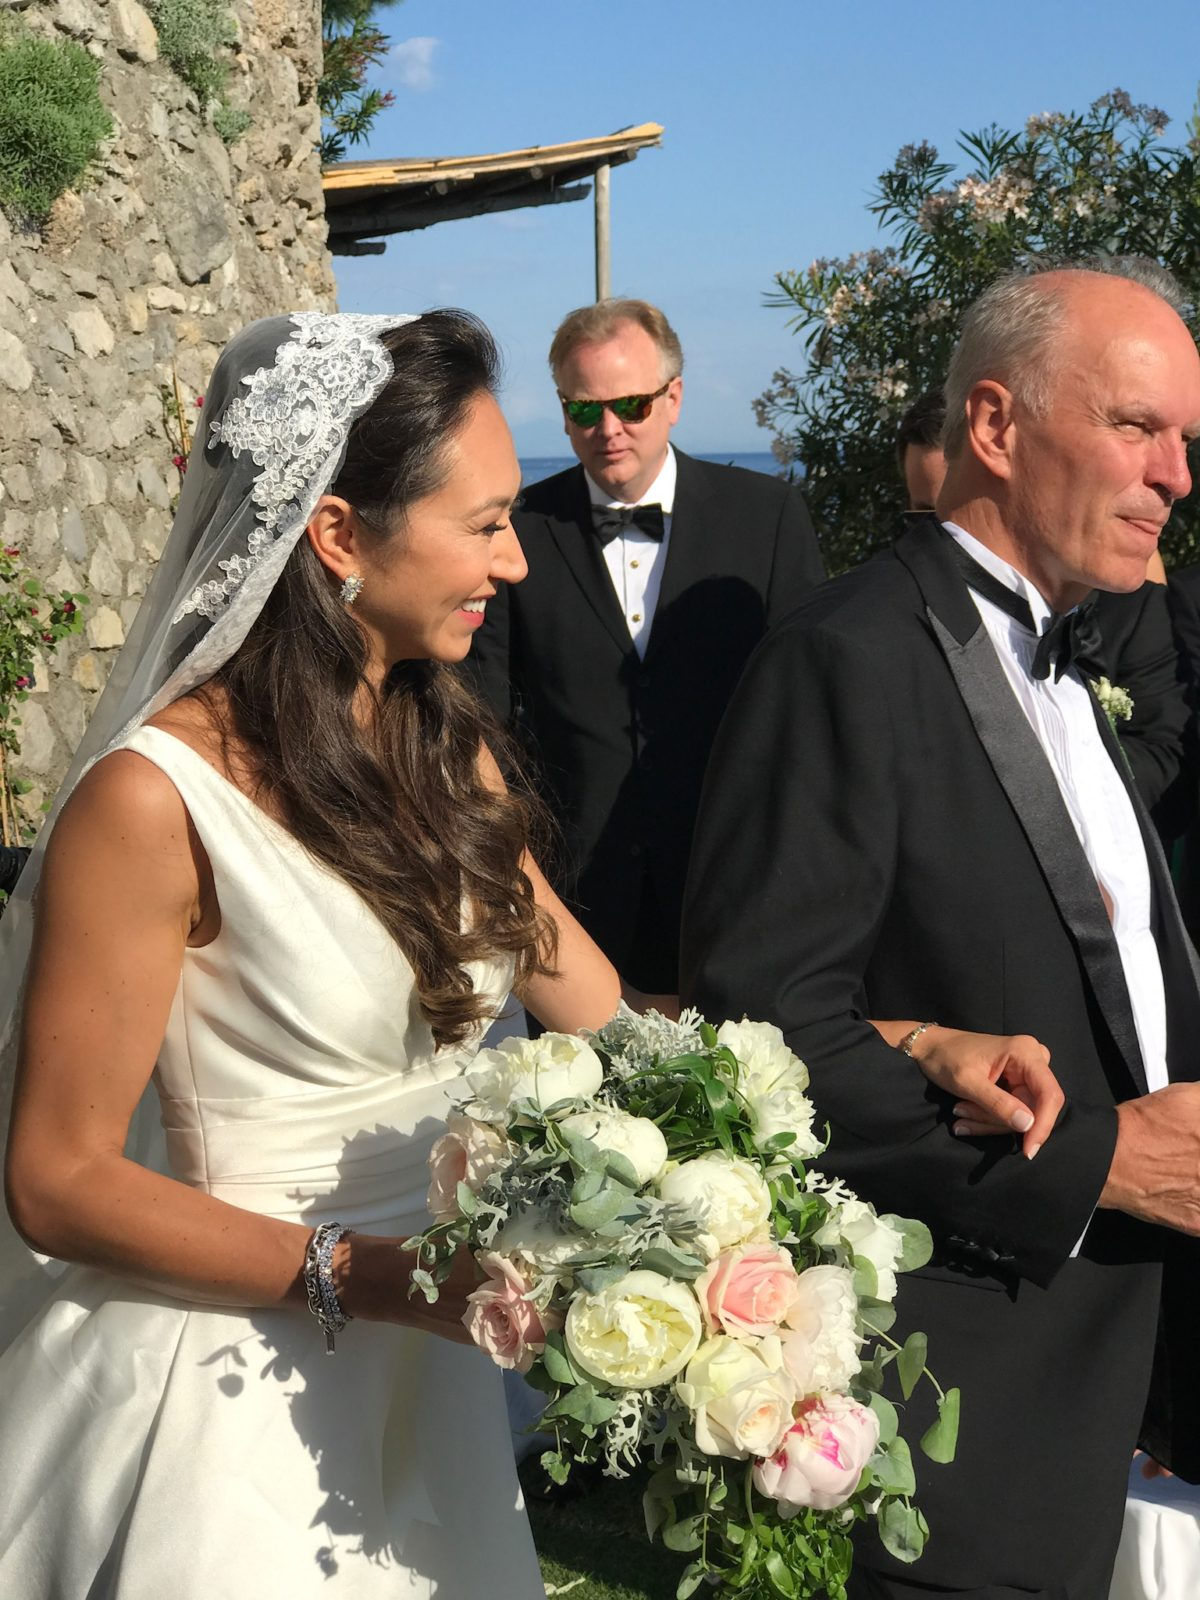 Nathalie and Benjamin Wedding in Positano Italy (17)